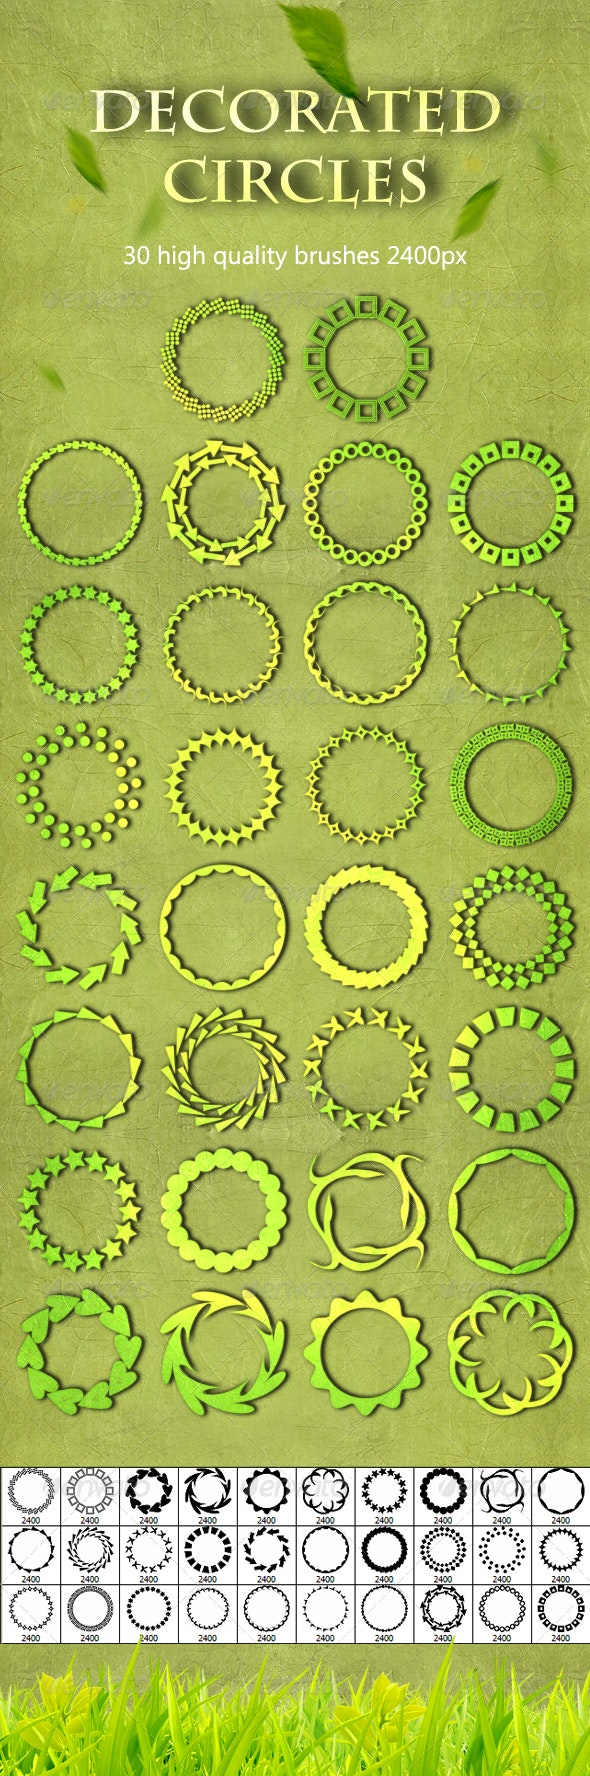 30 Decorated Circles - Artistic Brushes